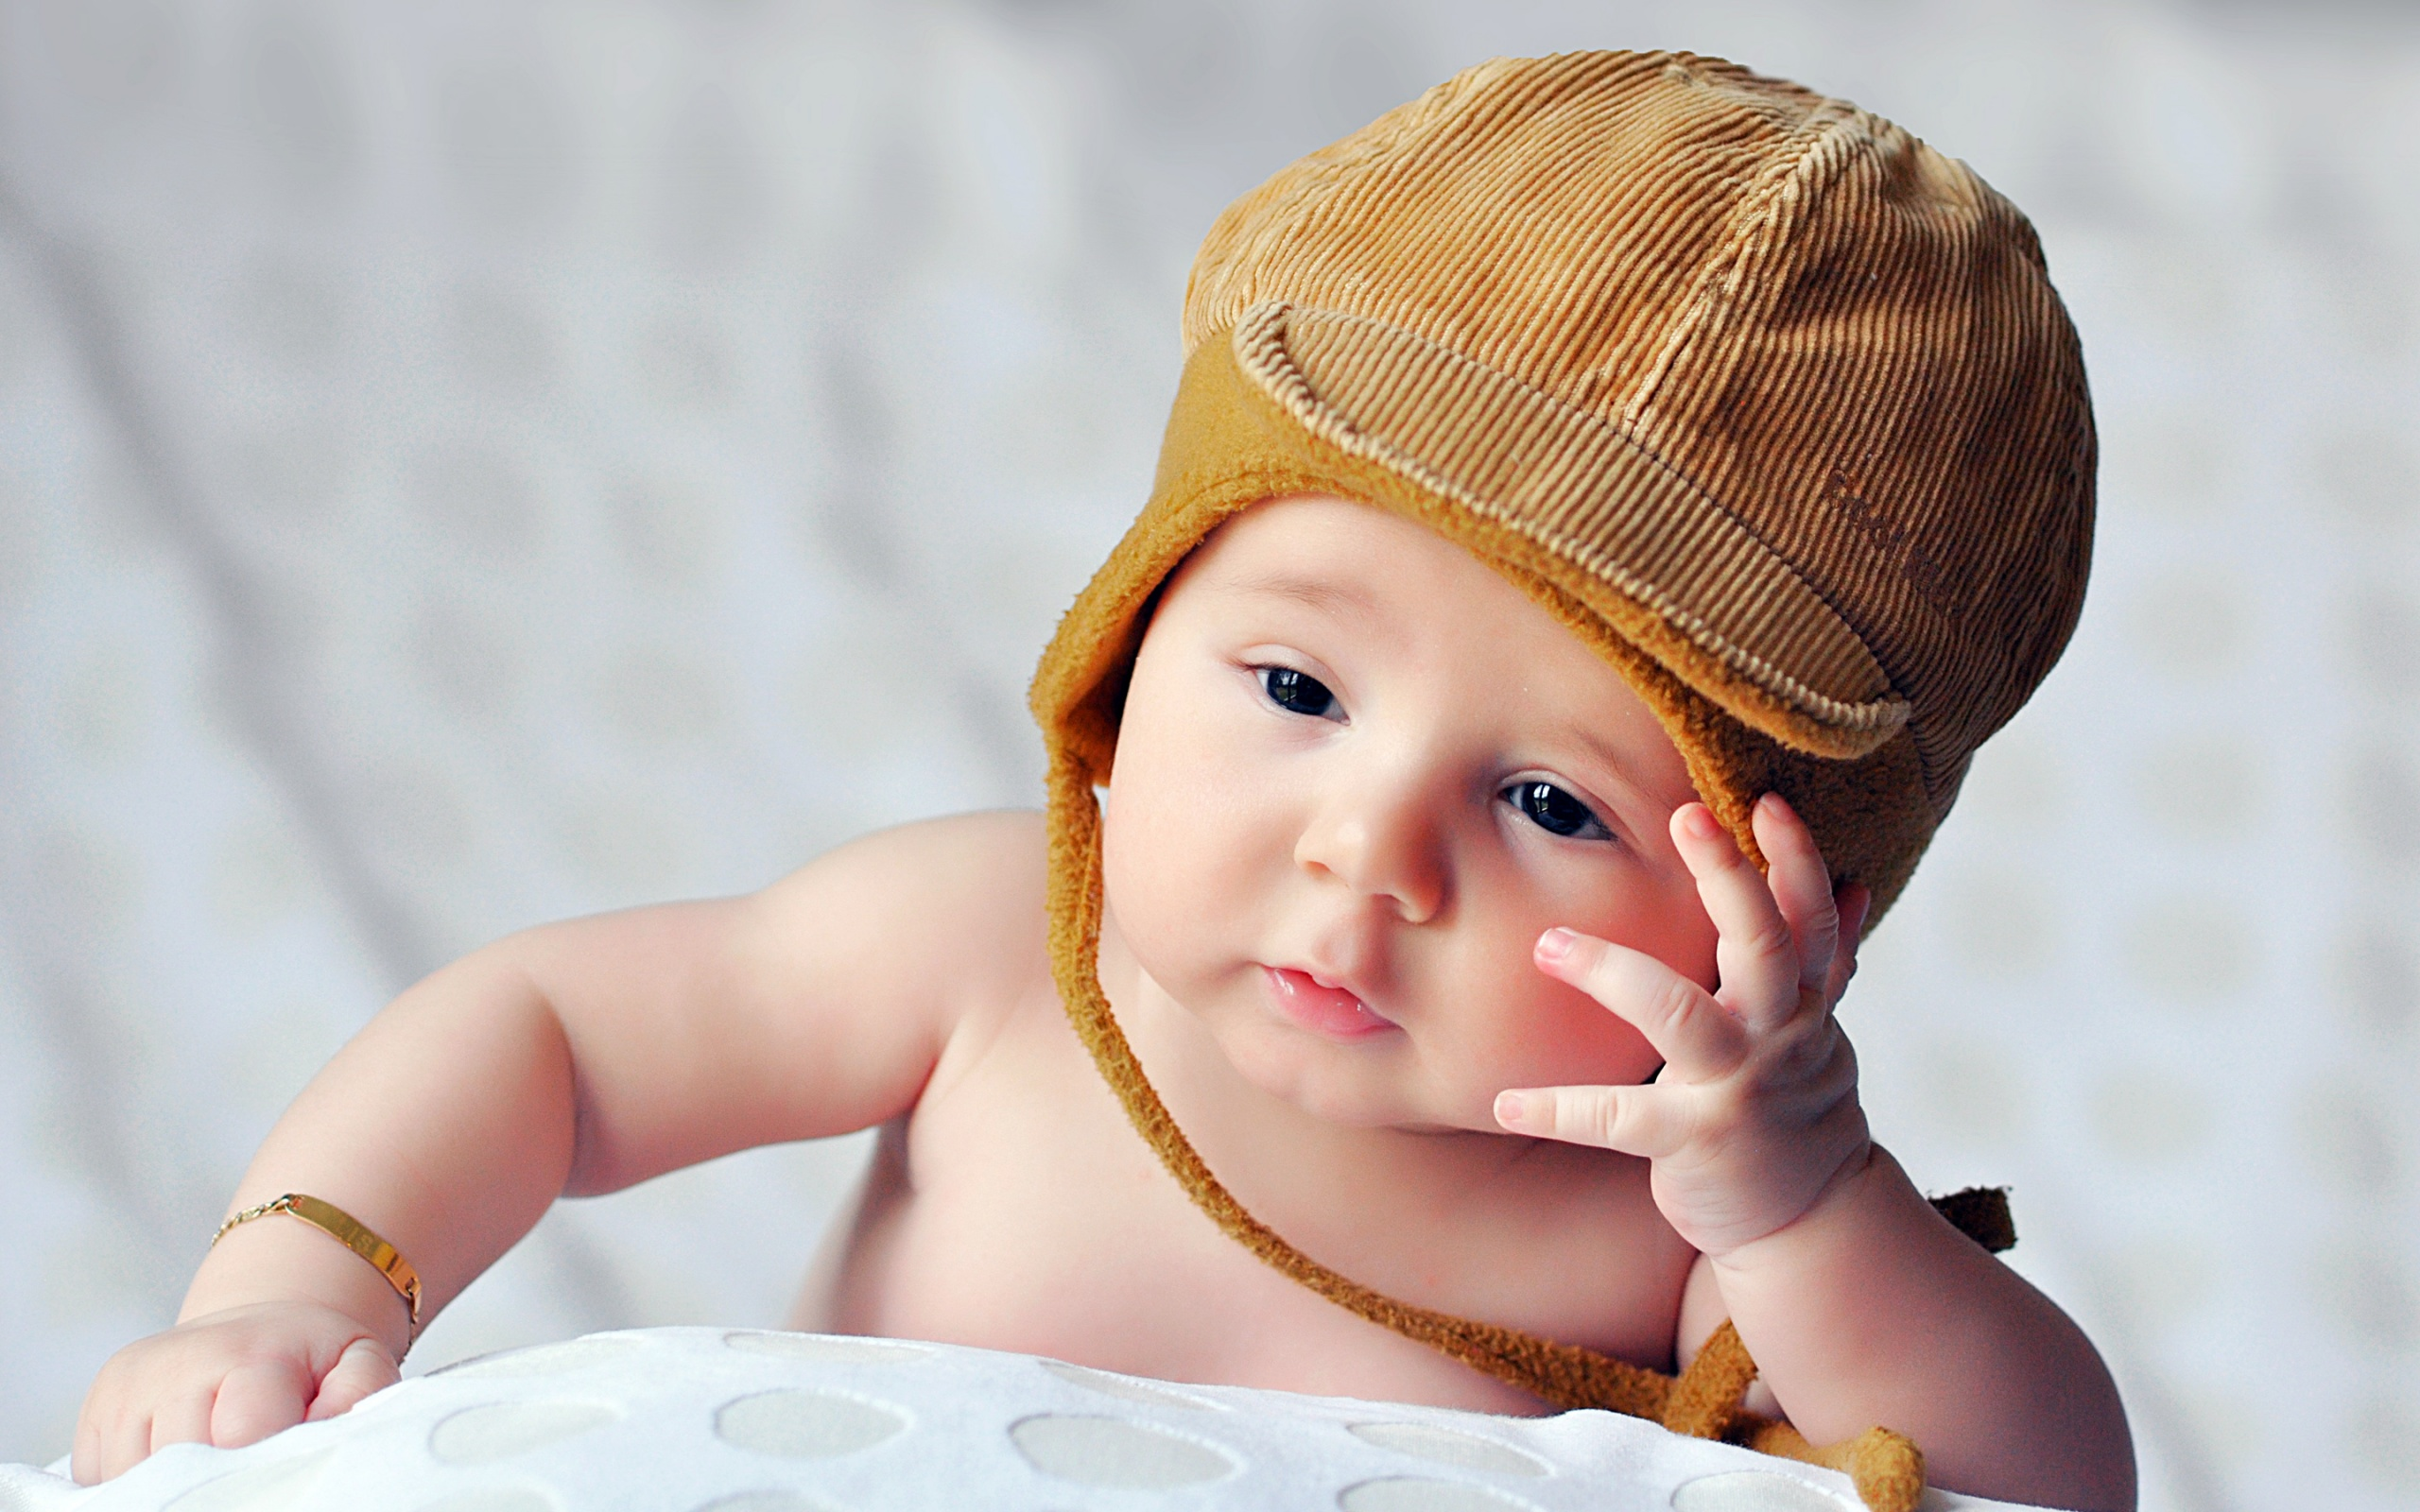 Cute Infant Wallpapers In Jpg Format For Free Download